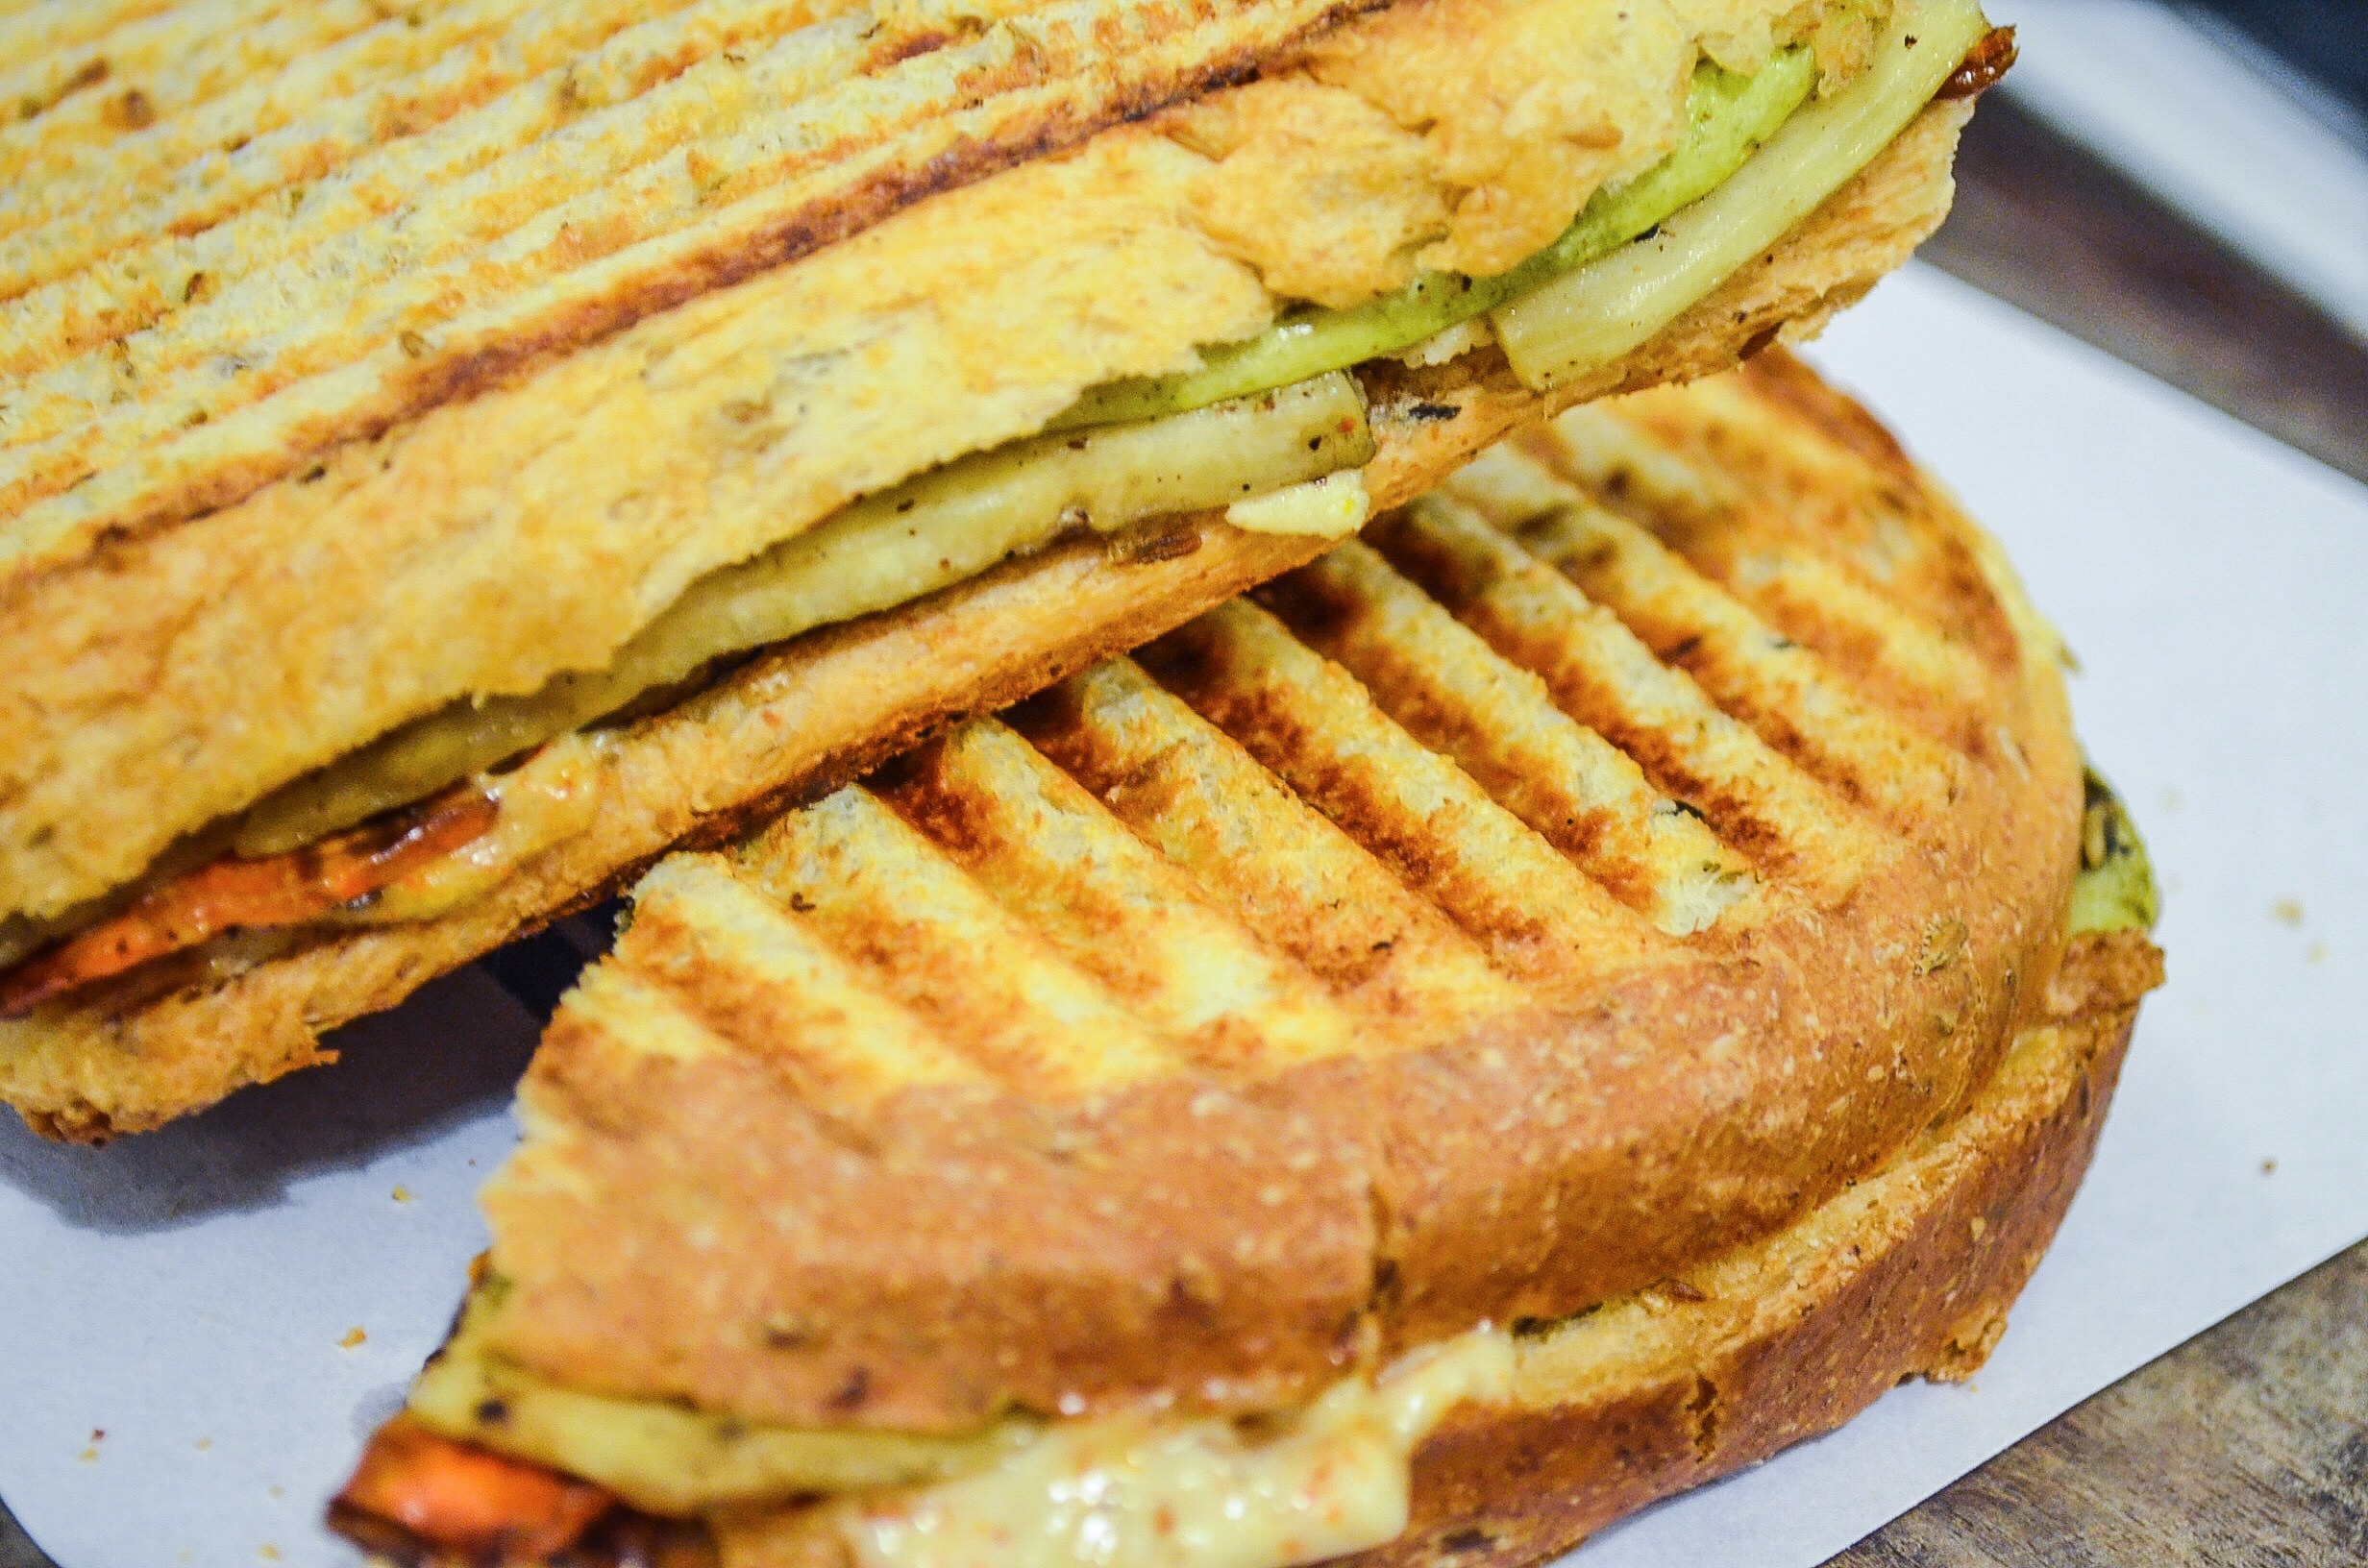 Grilled Vegetable Sandwich - so yum!